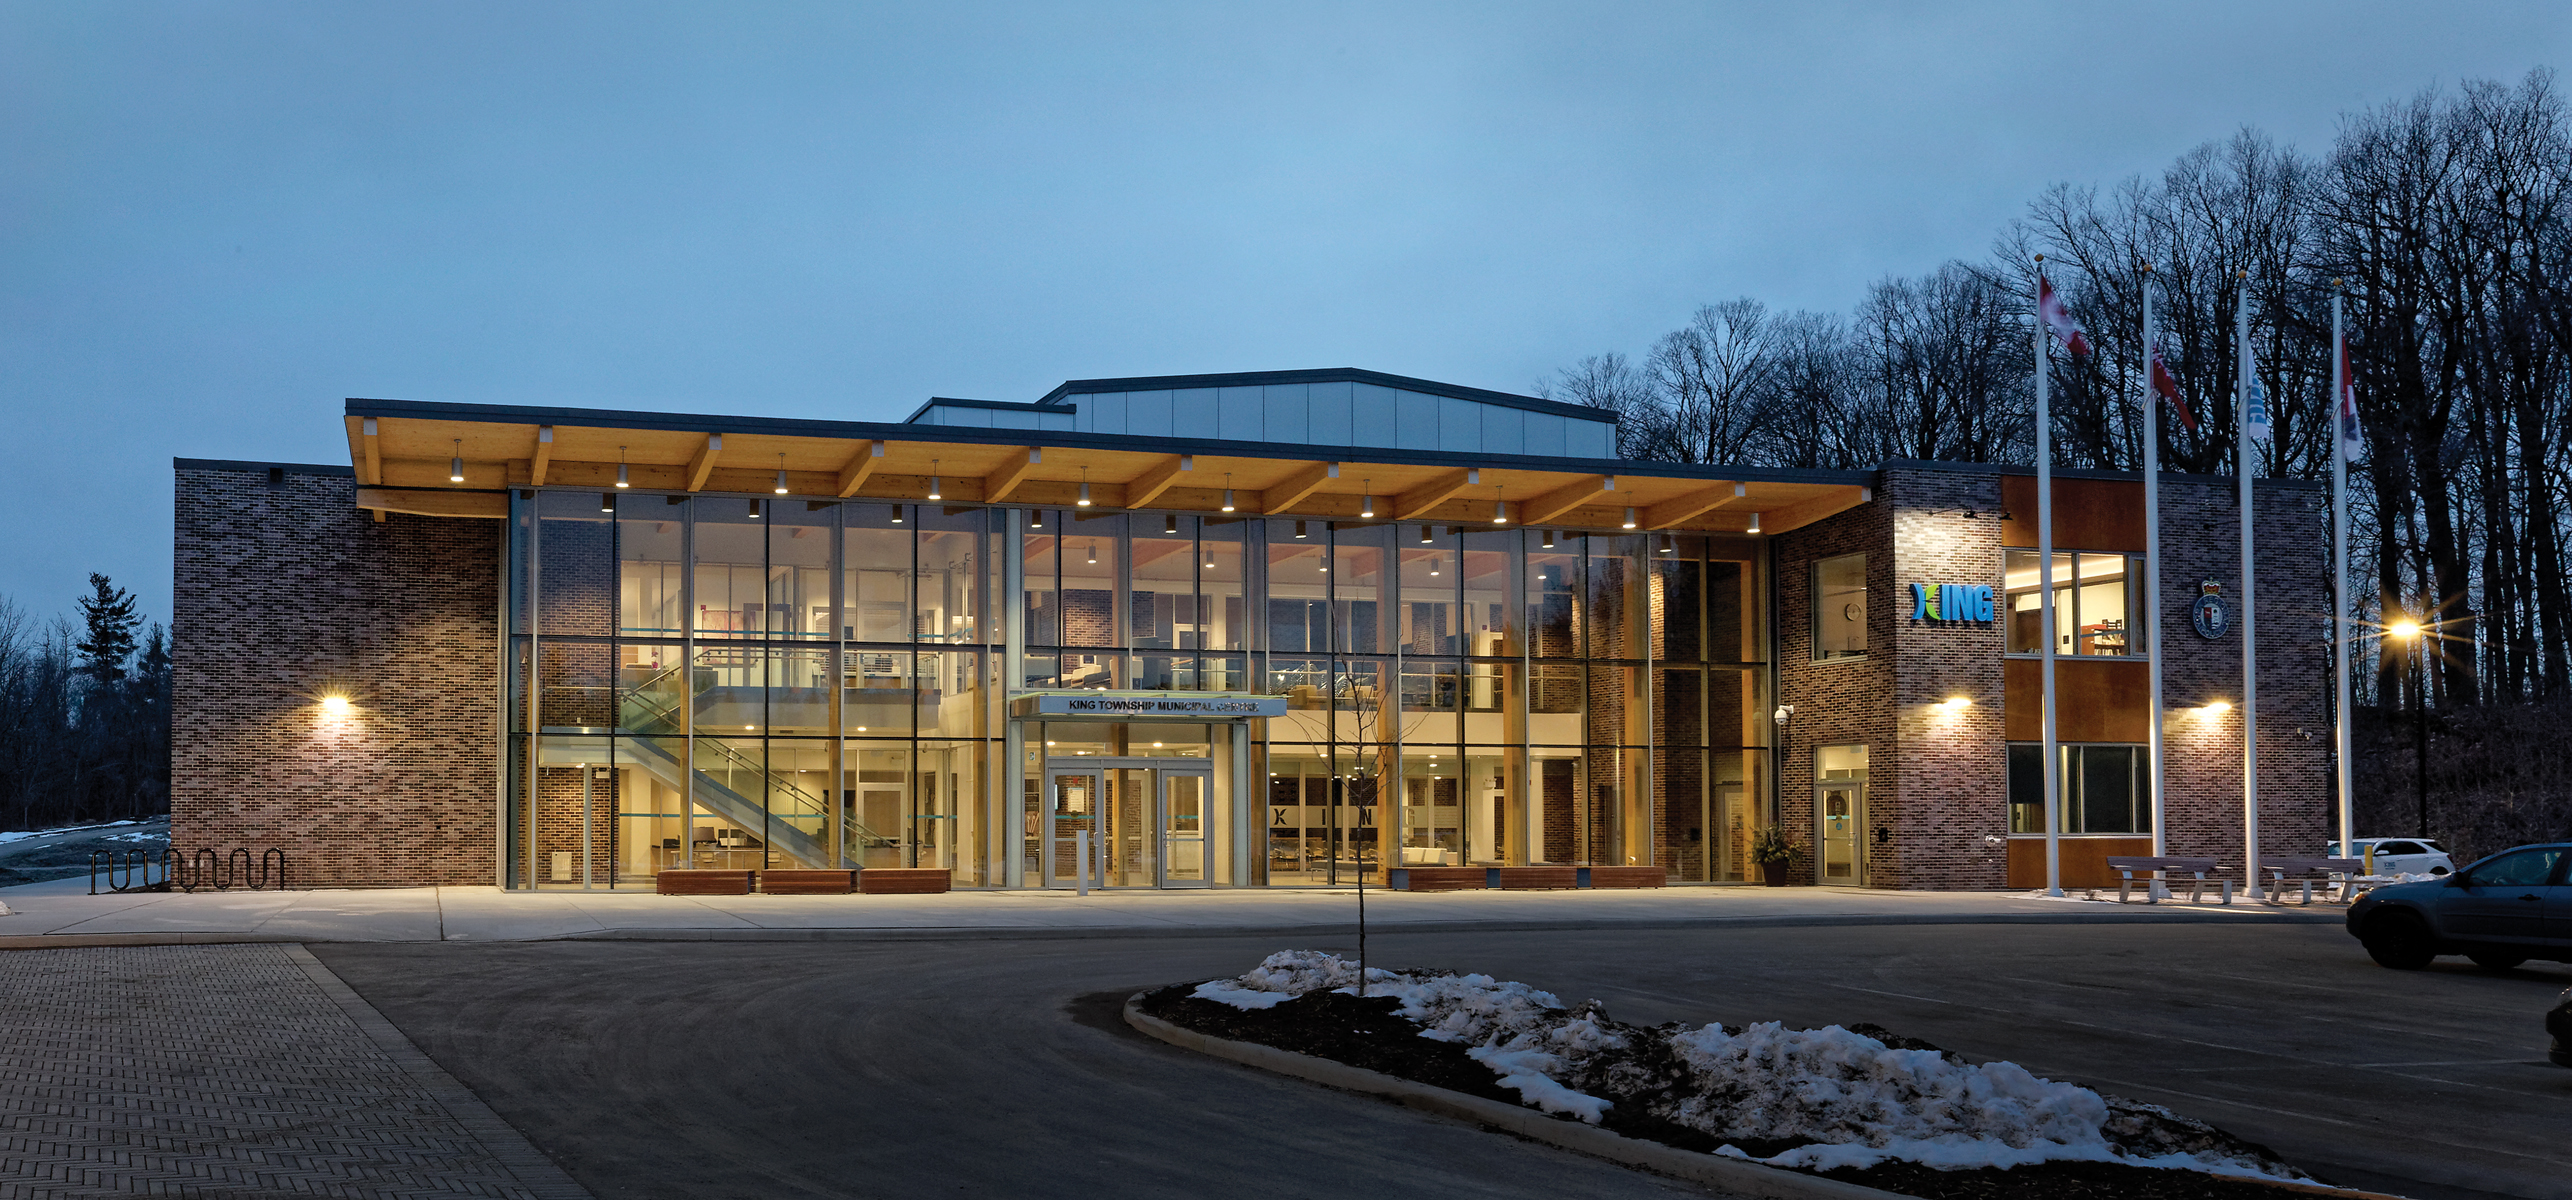 View from parking lot of front elevation of two storey building with illuminated glazed facade